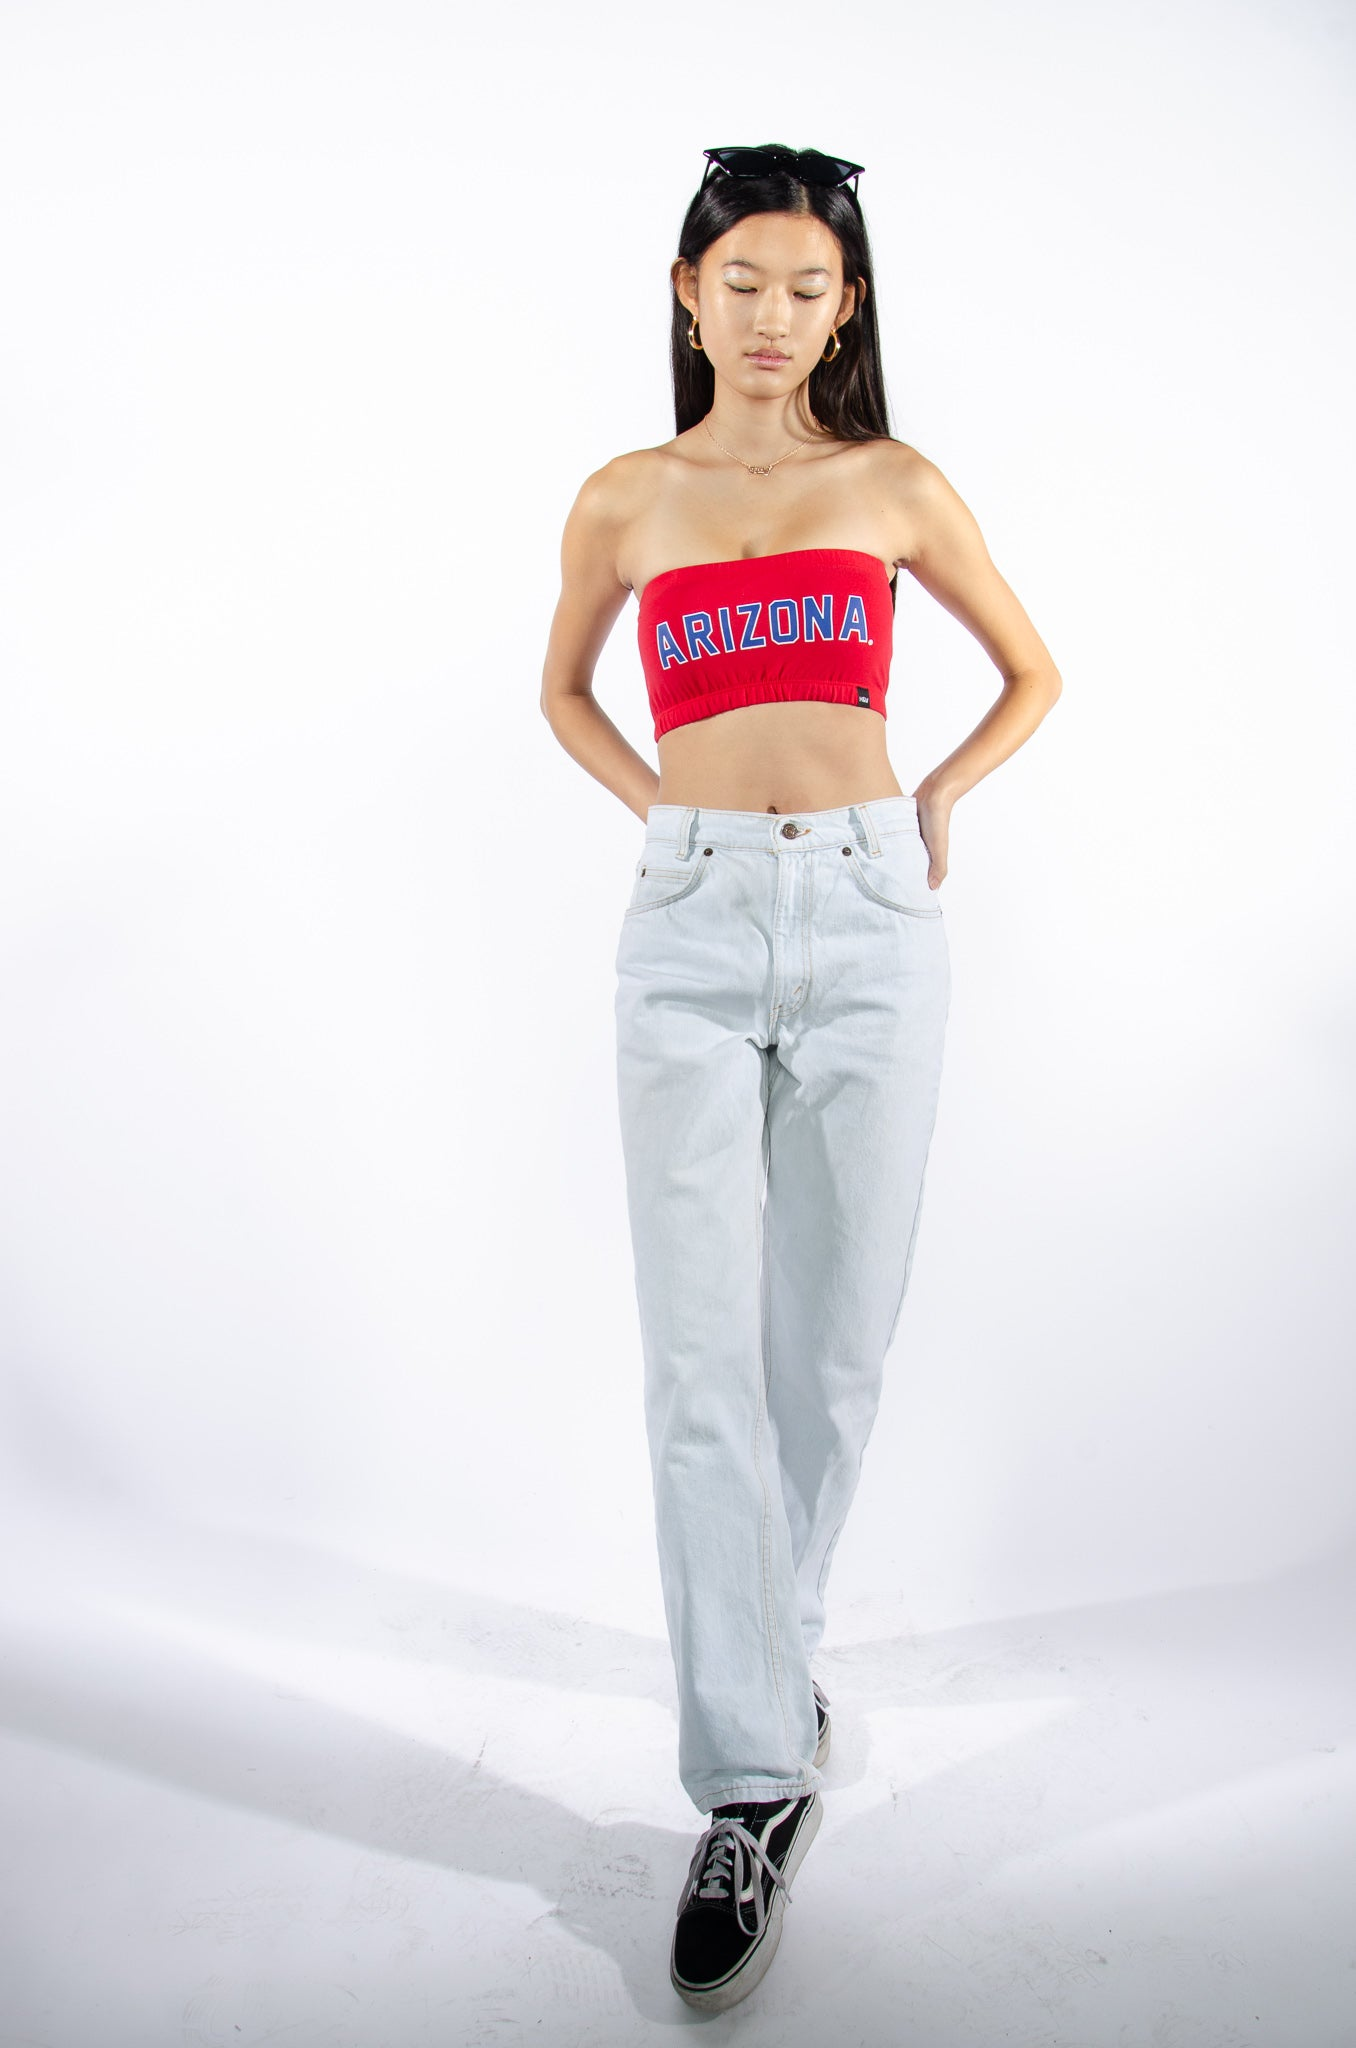 Arizona Red Bandeau Top